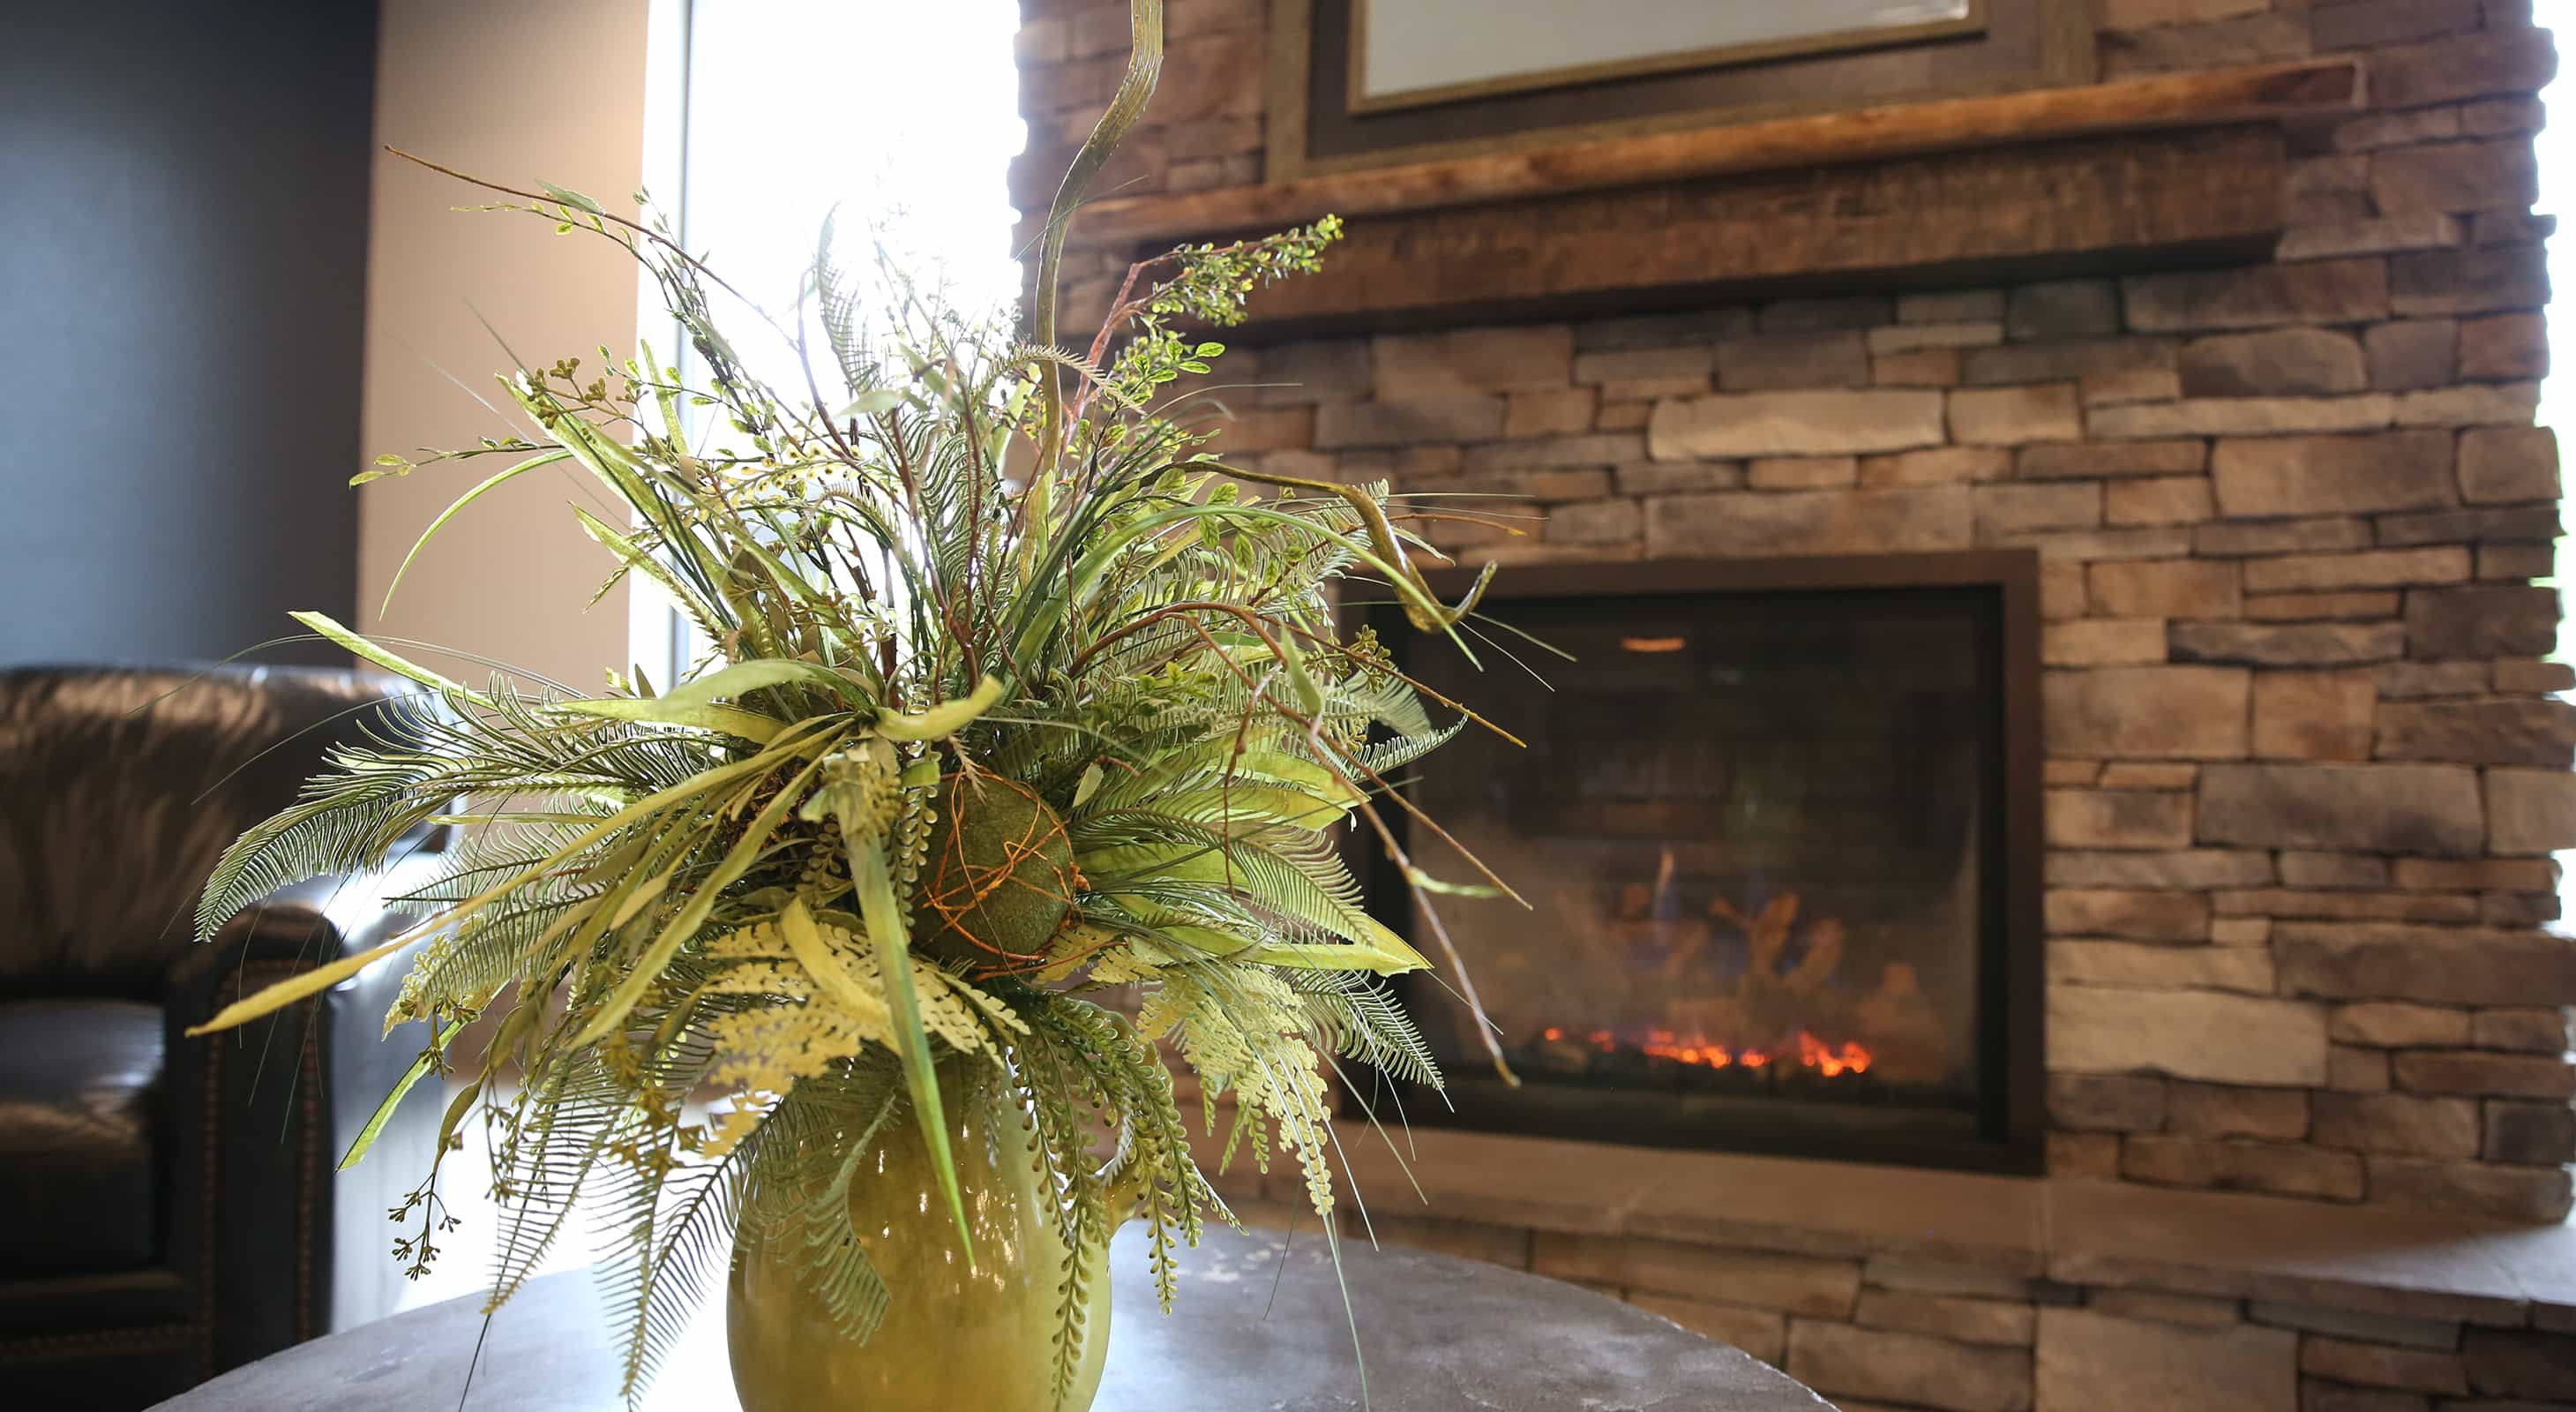 Common area fireplace and potted plant